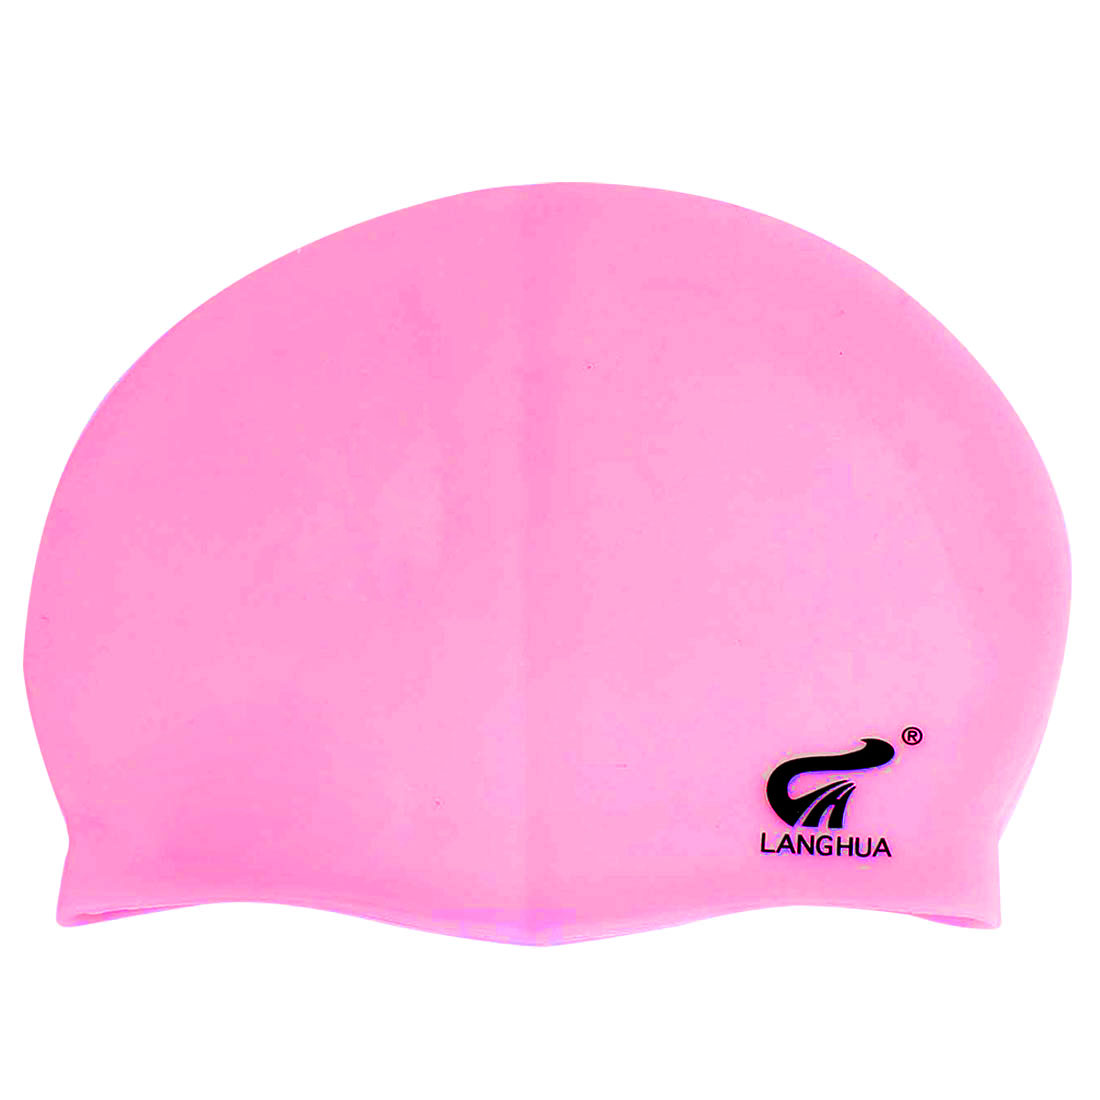 Pink Silicone Stretchy Sport Swimming Swim Cap Hat for Adults